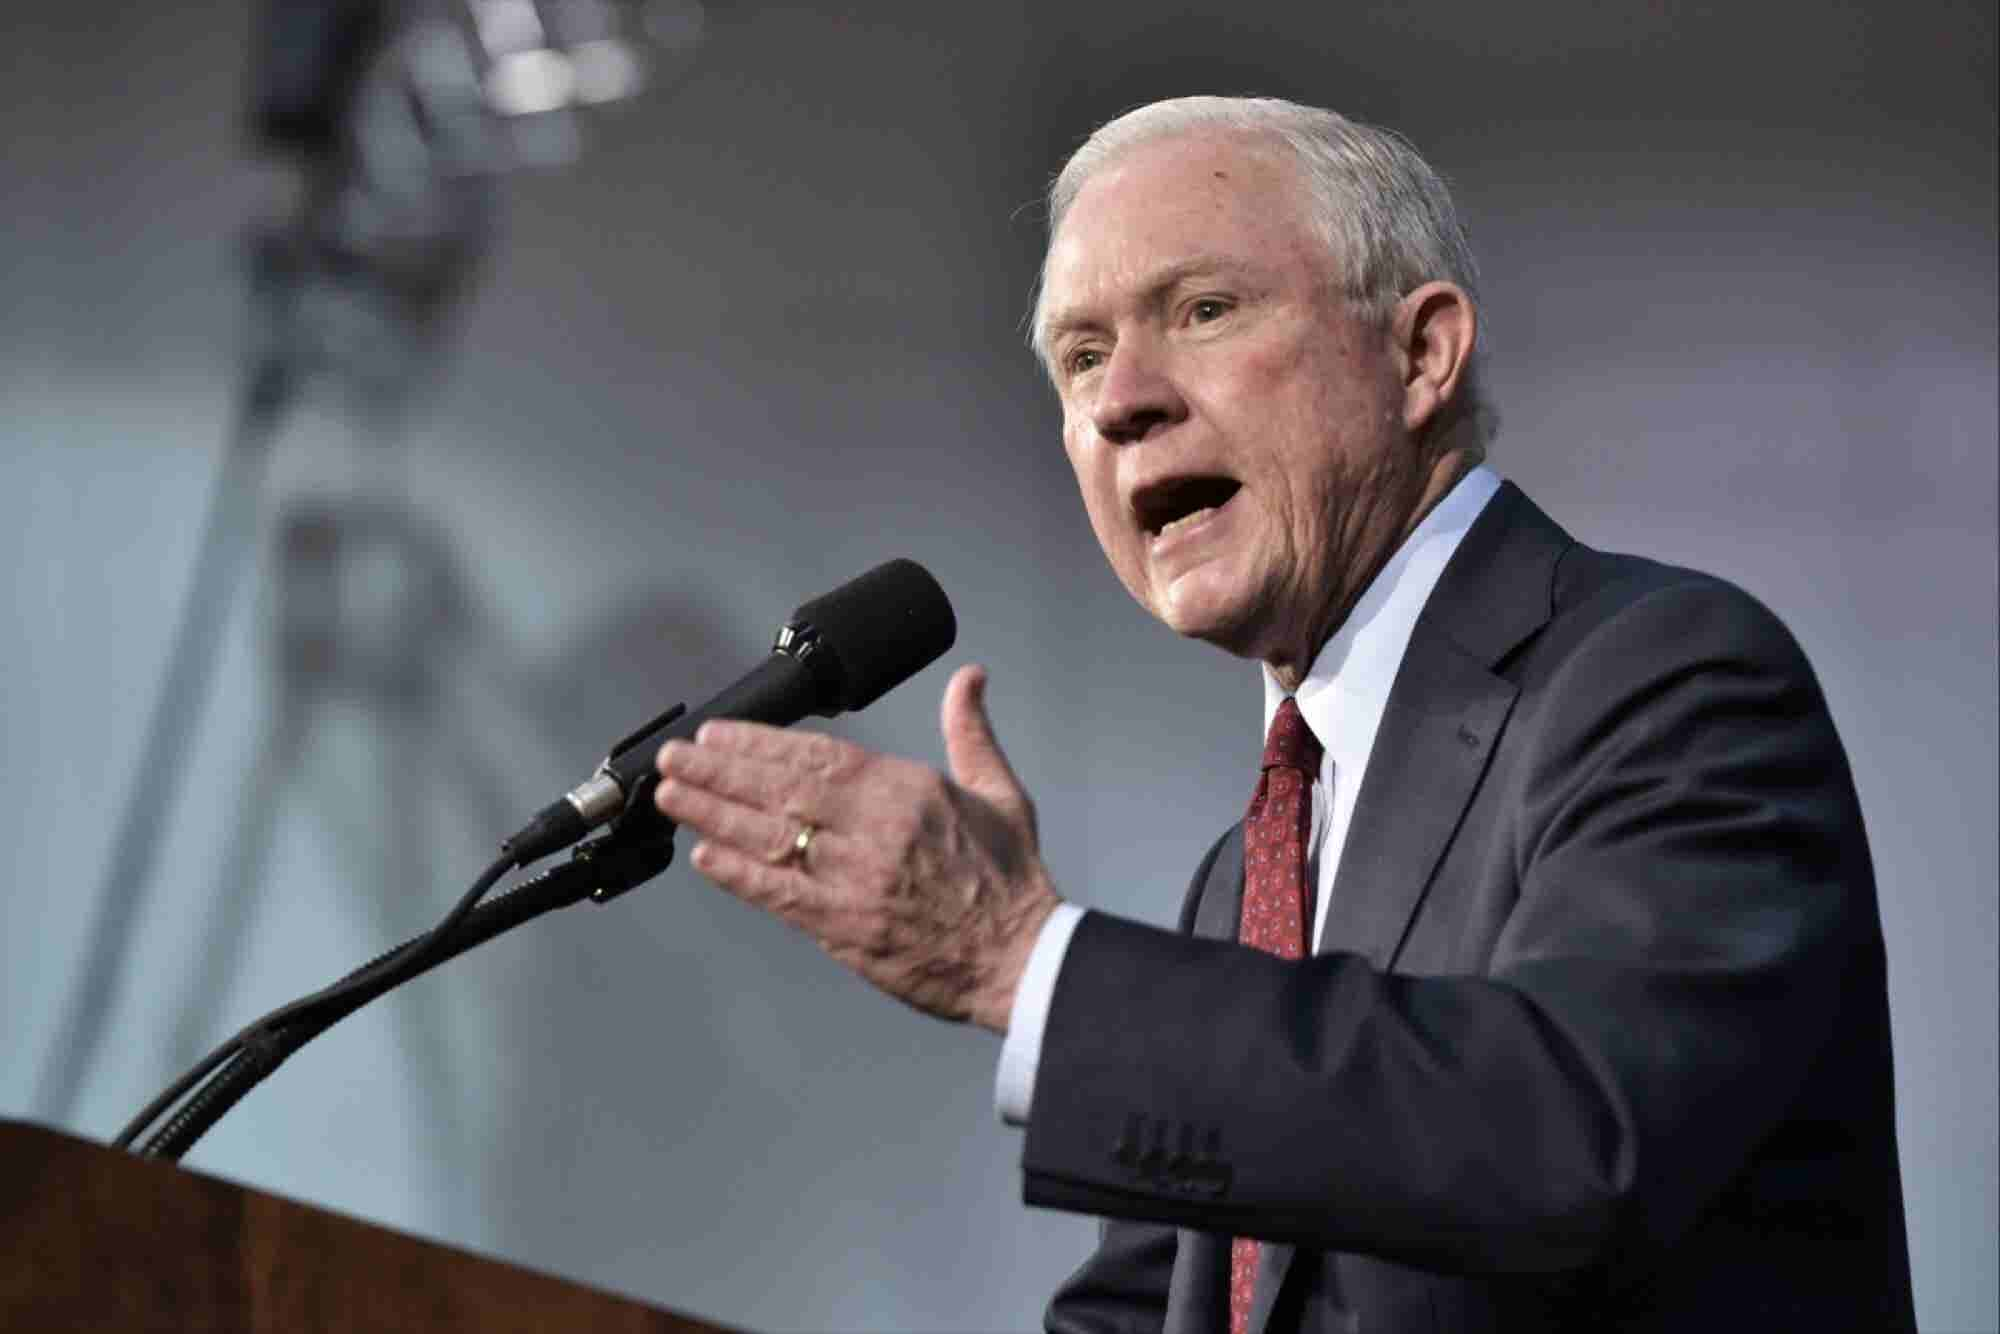 Cannabis Industry Is Rattled by Trump but Thinks Federal Crackdown Unl...